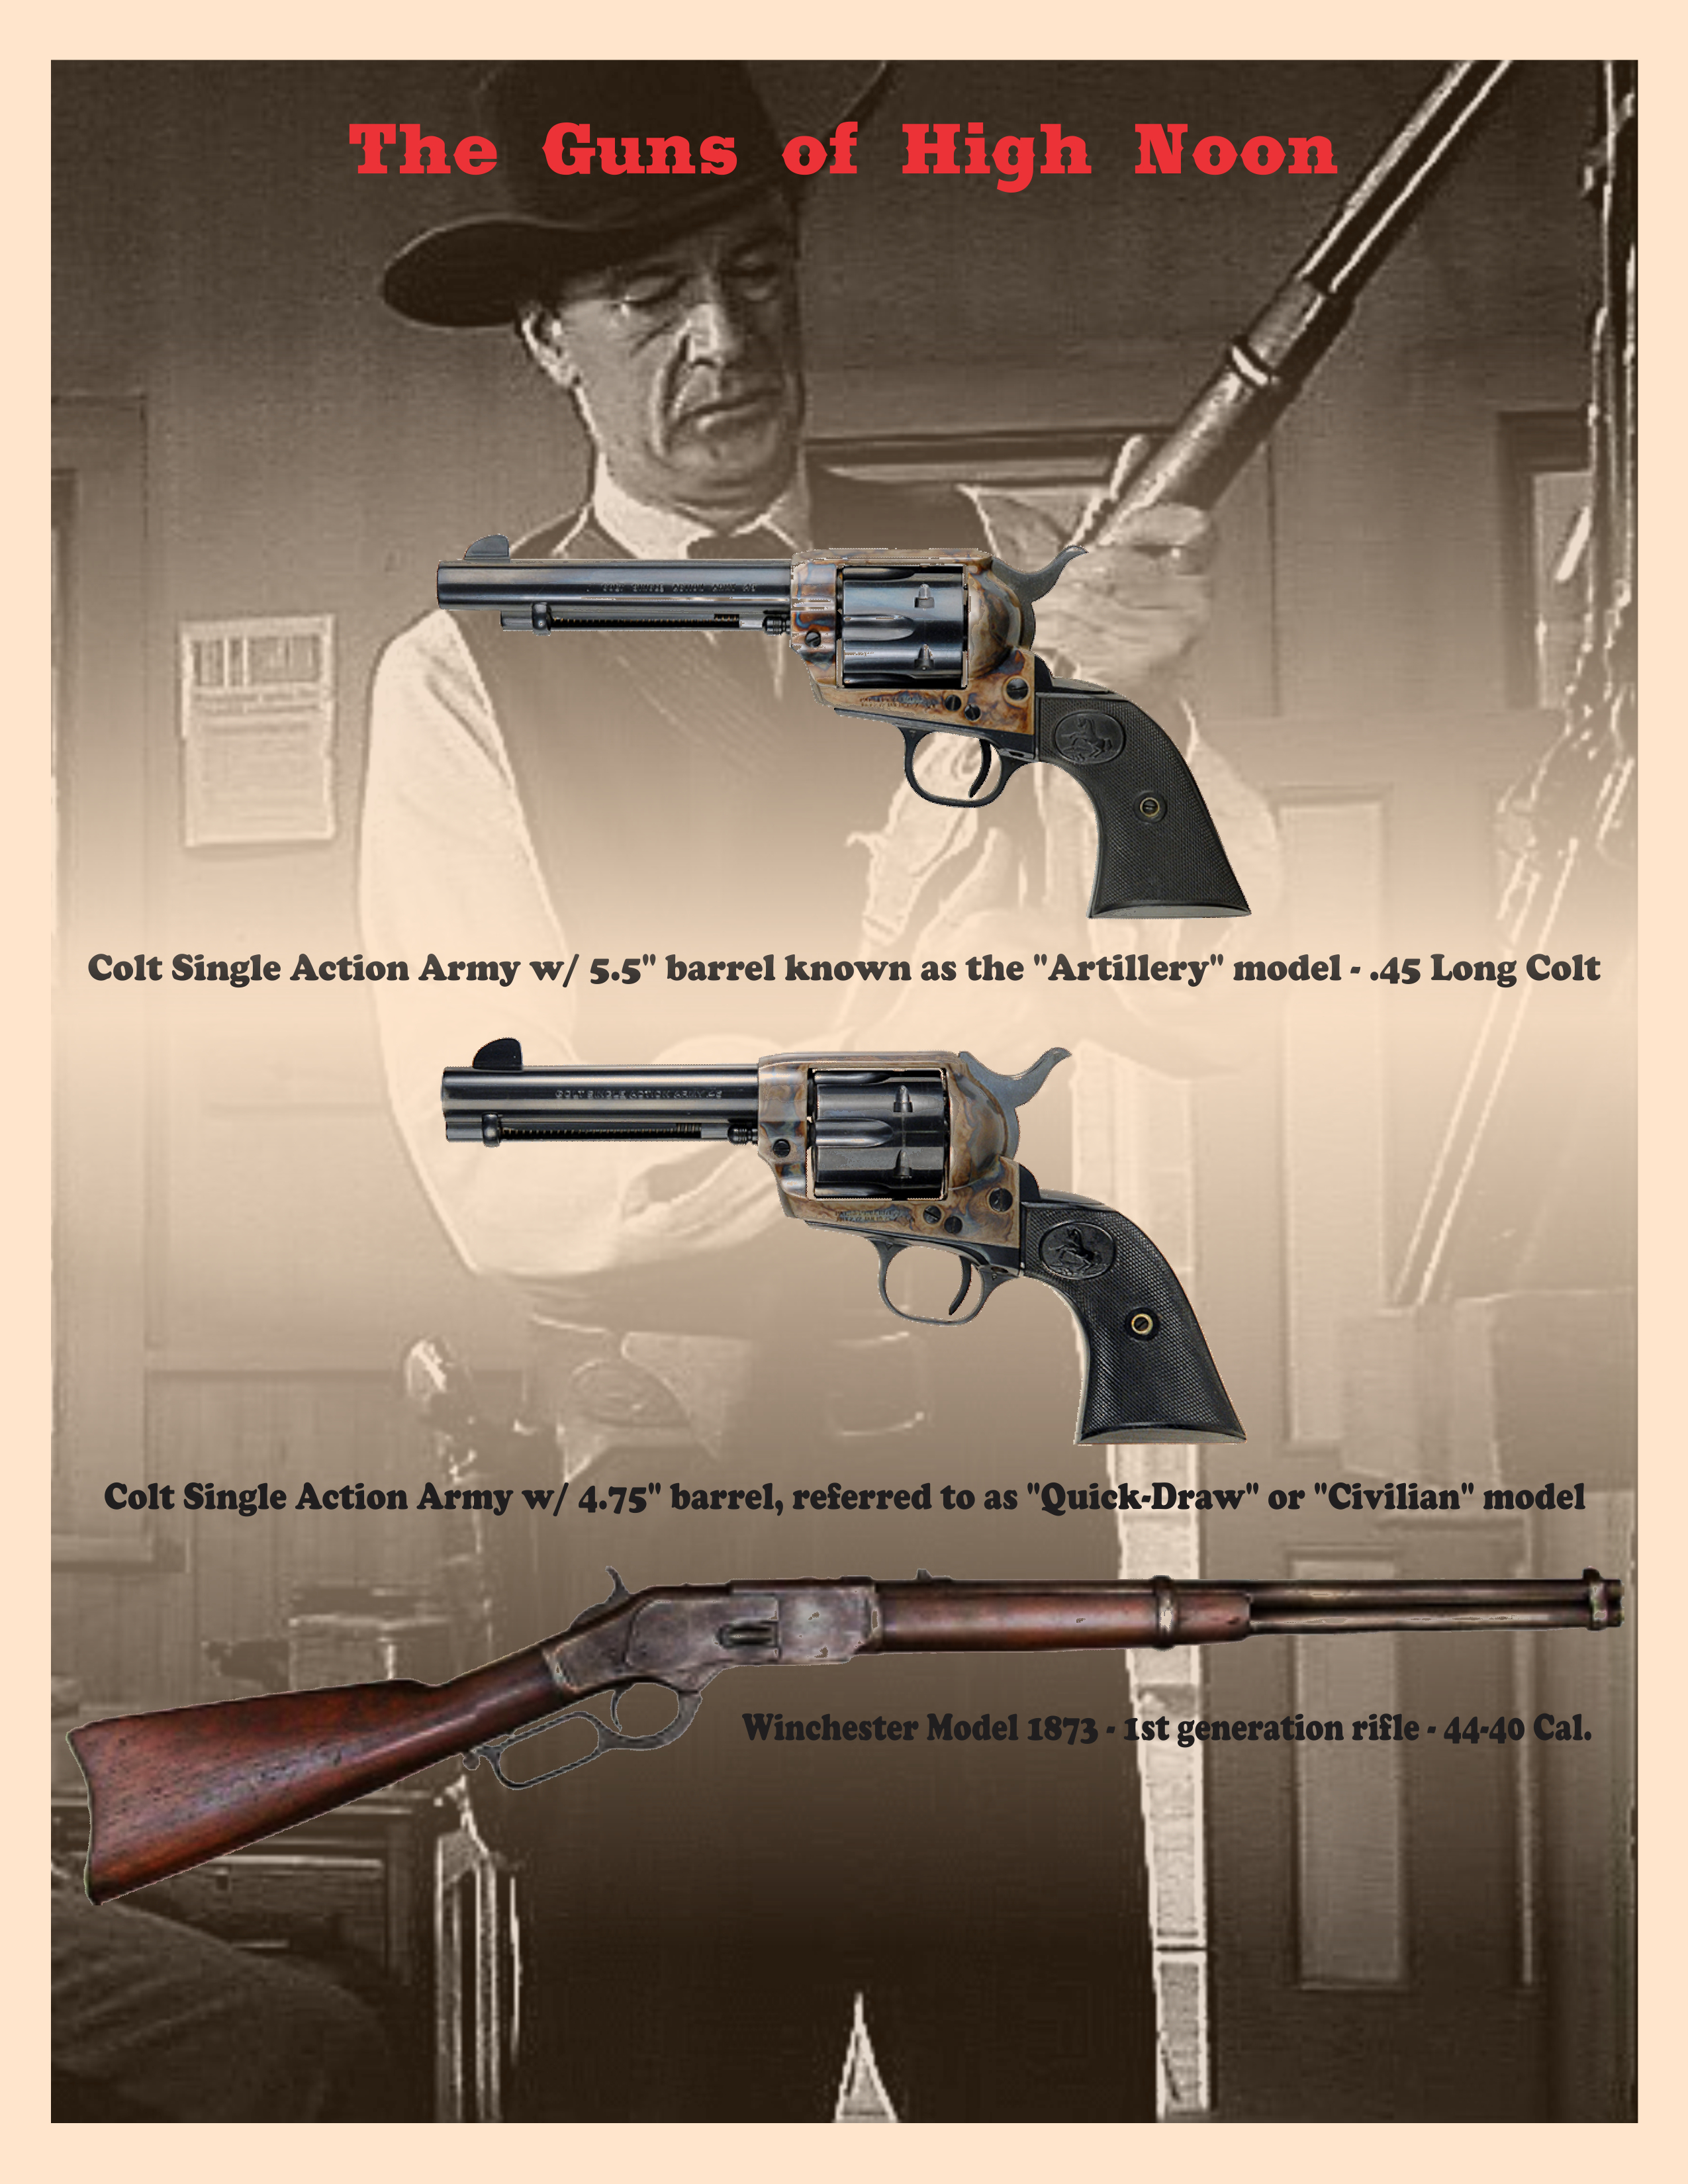 High Noon … the Guns …   My Favorite Westerns